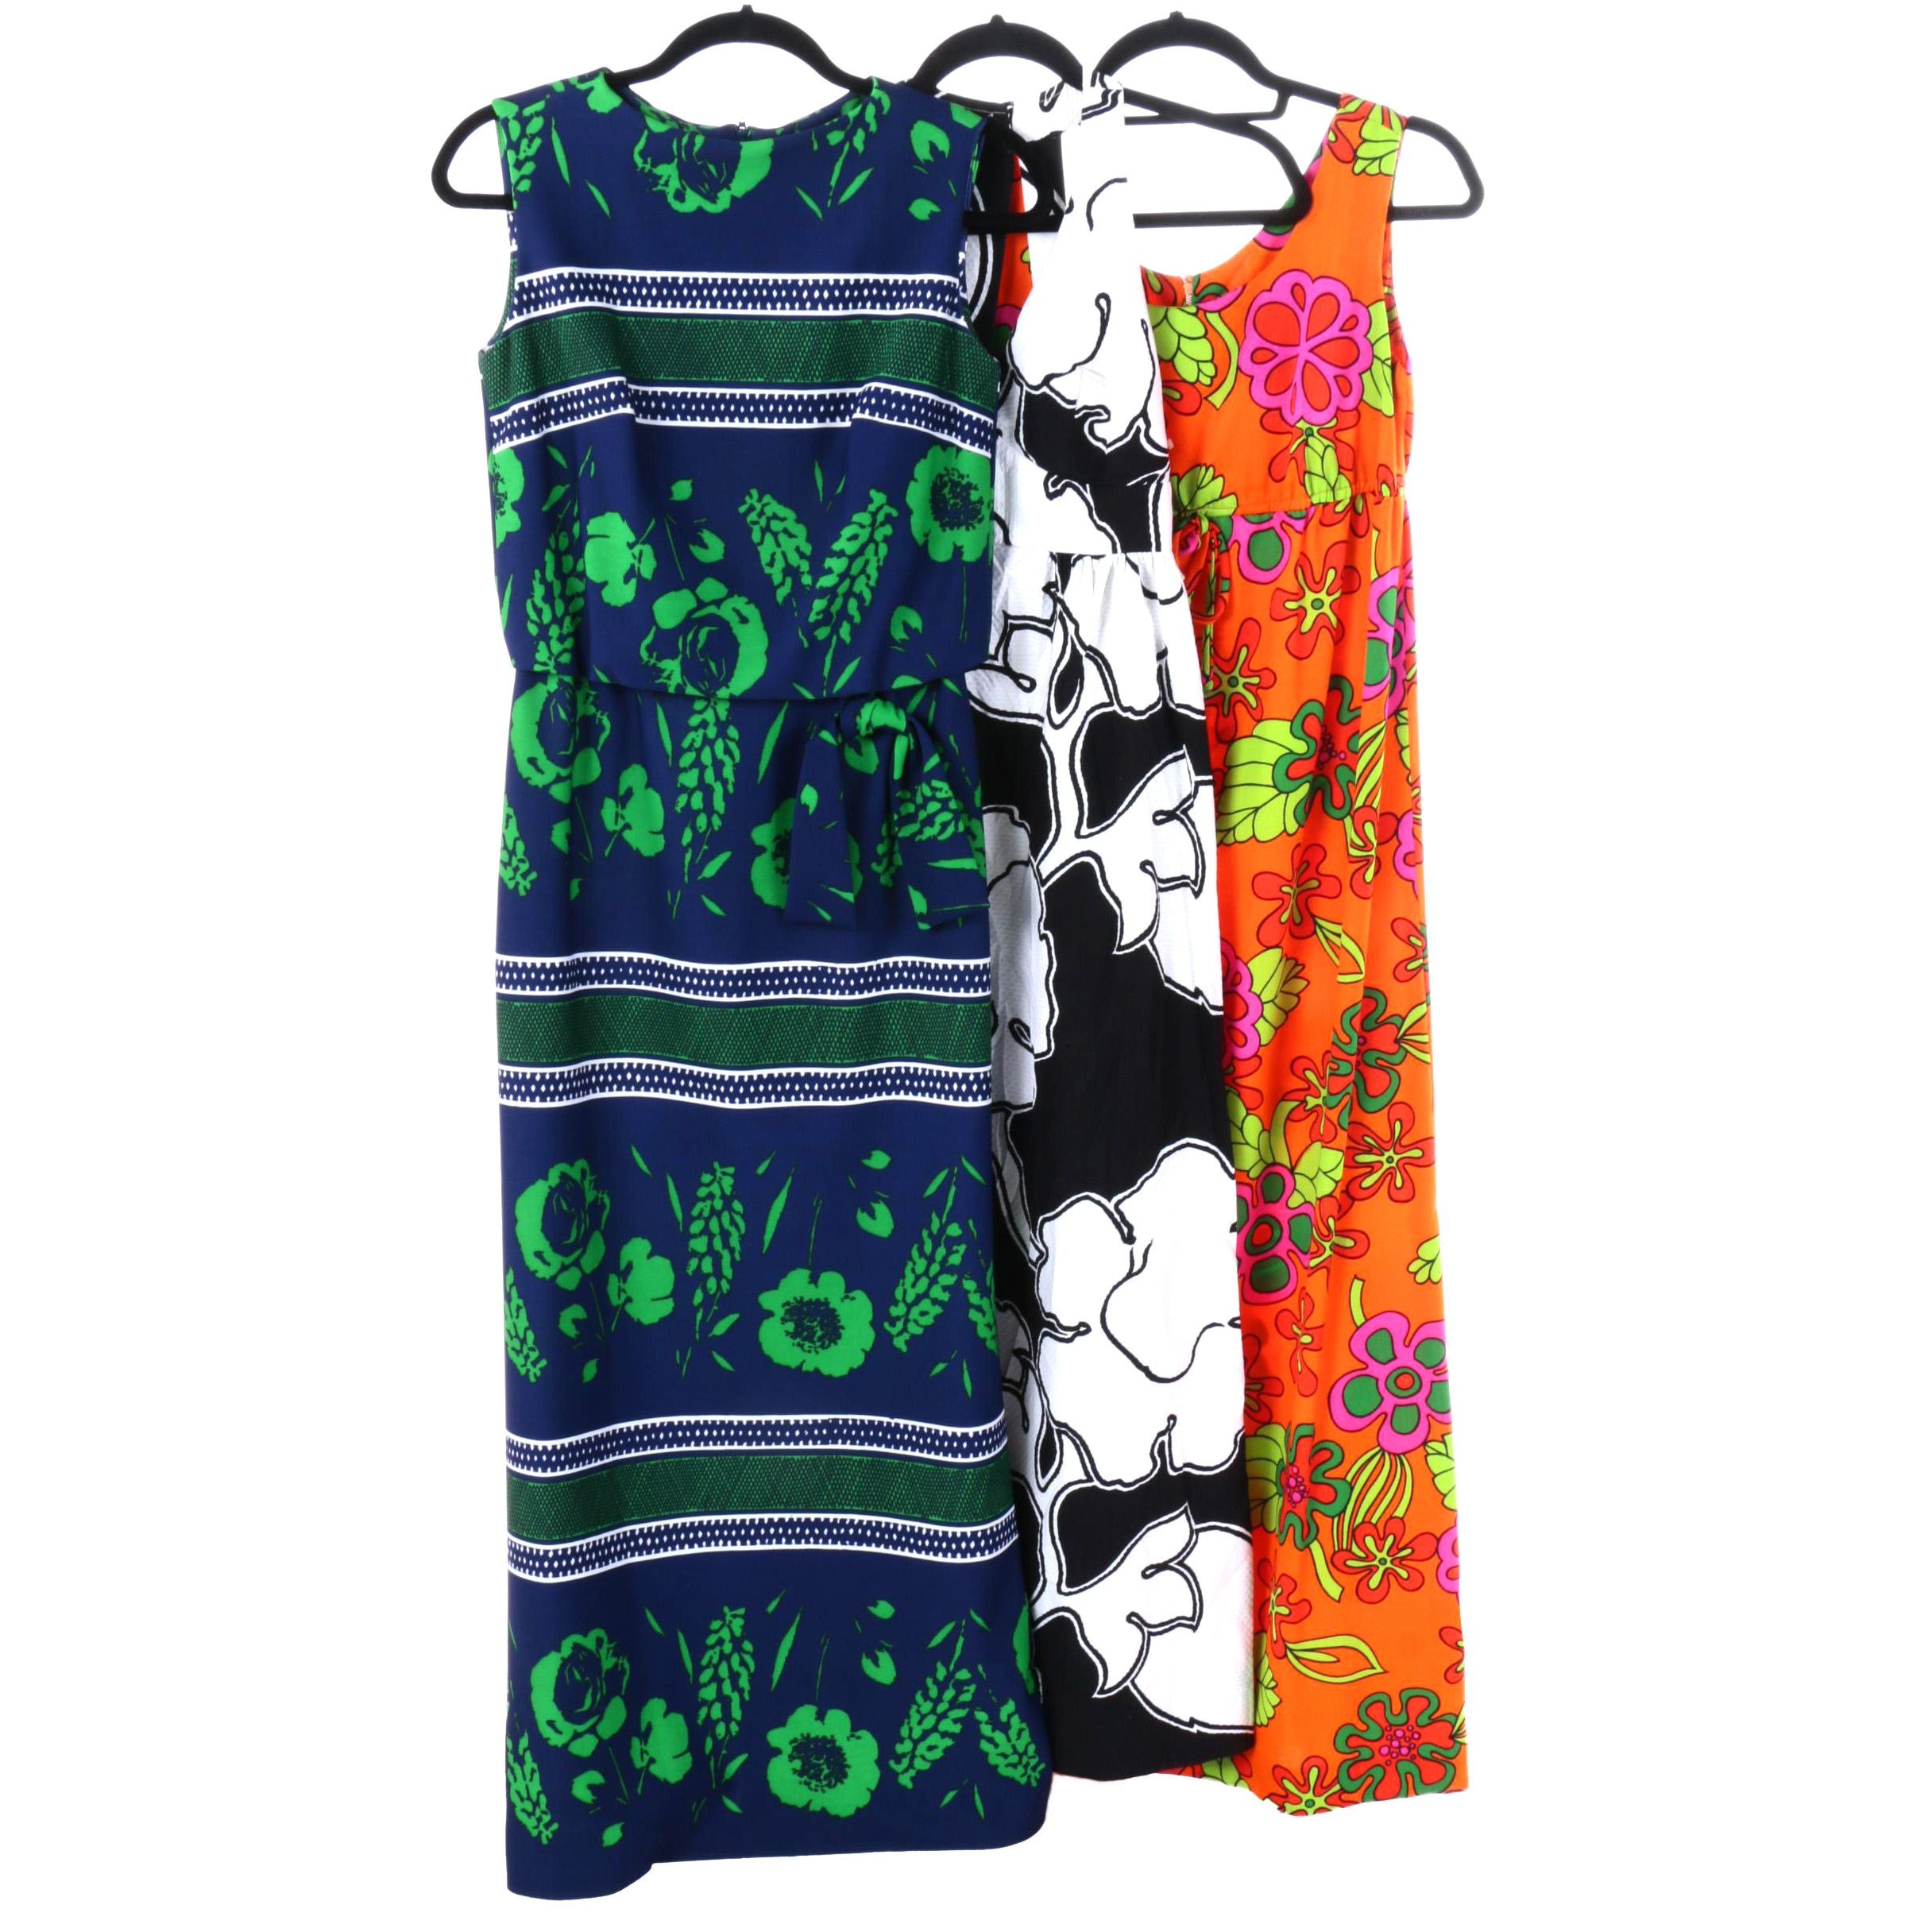 1960s Colorful Hawaiian Floral and Geometric Dresses Including Hilo Hattie